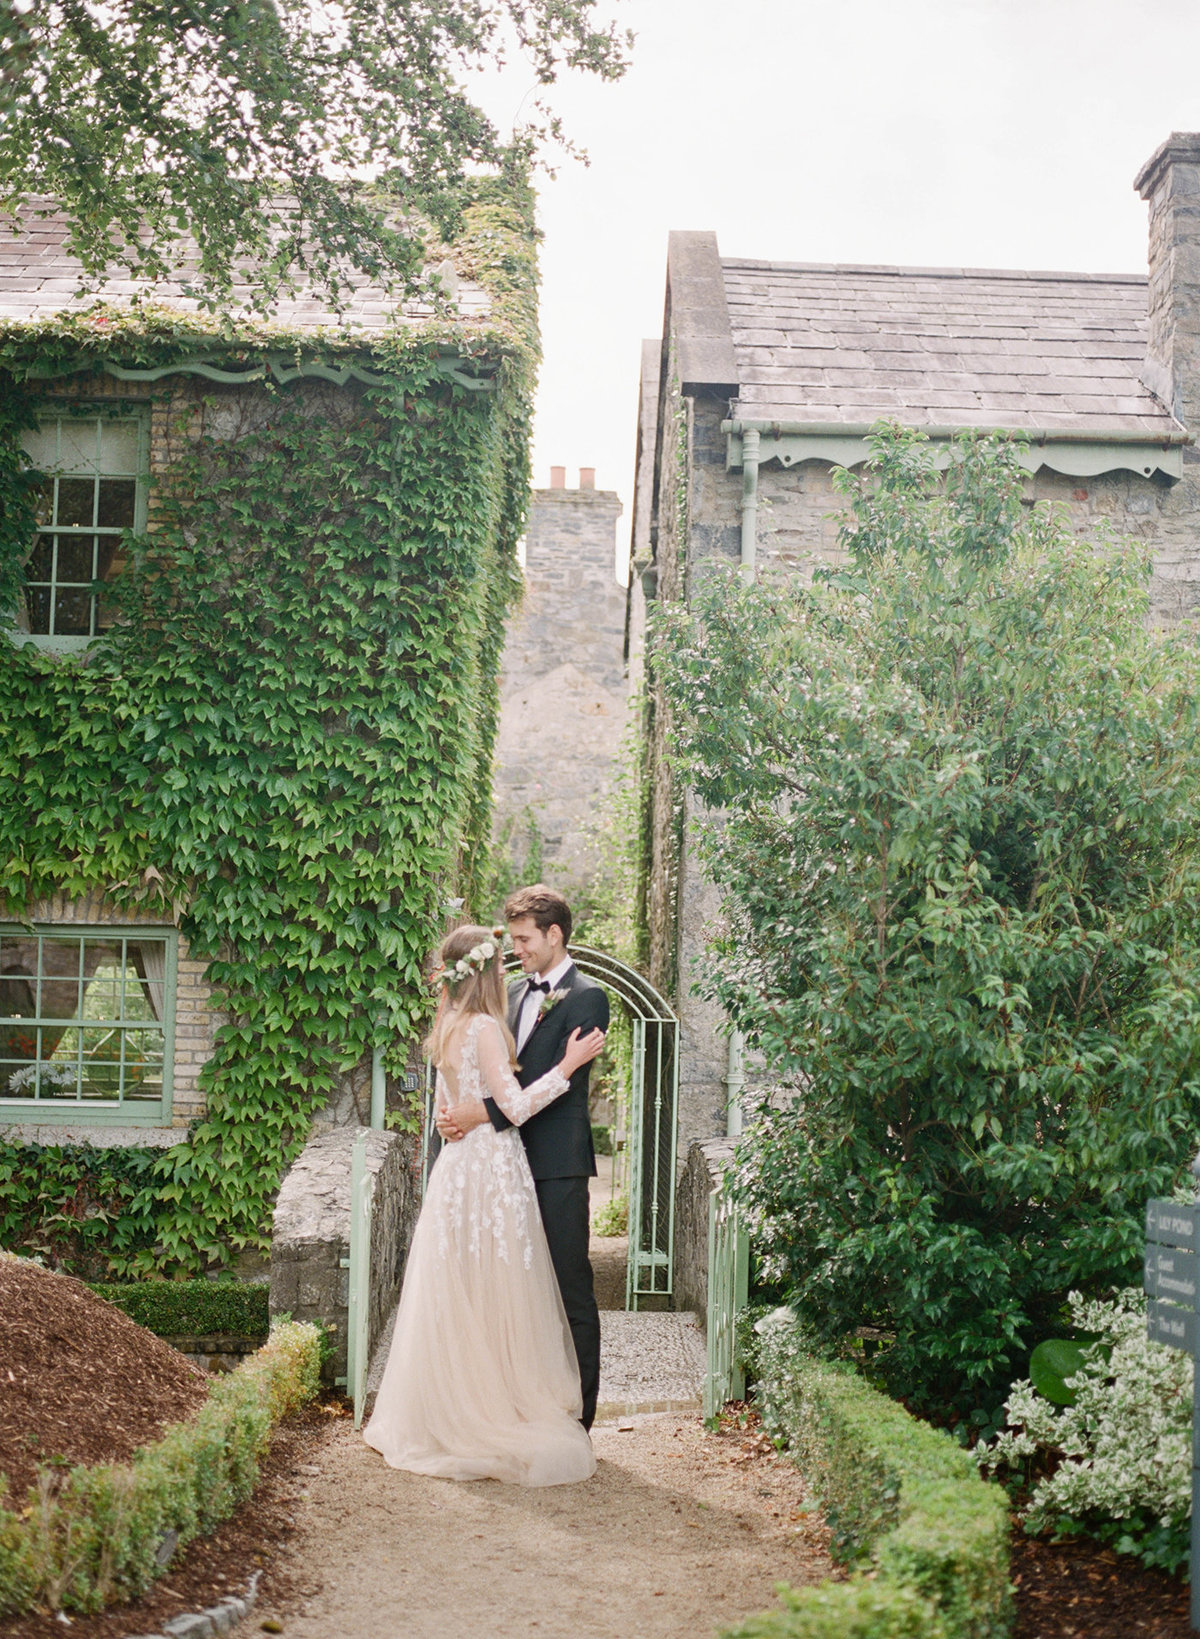 Destination Wedding Photographer - Ireland Editorial - Cliff at Lyons Kildare Ireland - Sarah Sunstrom Photography - 40